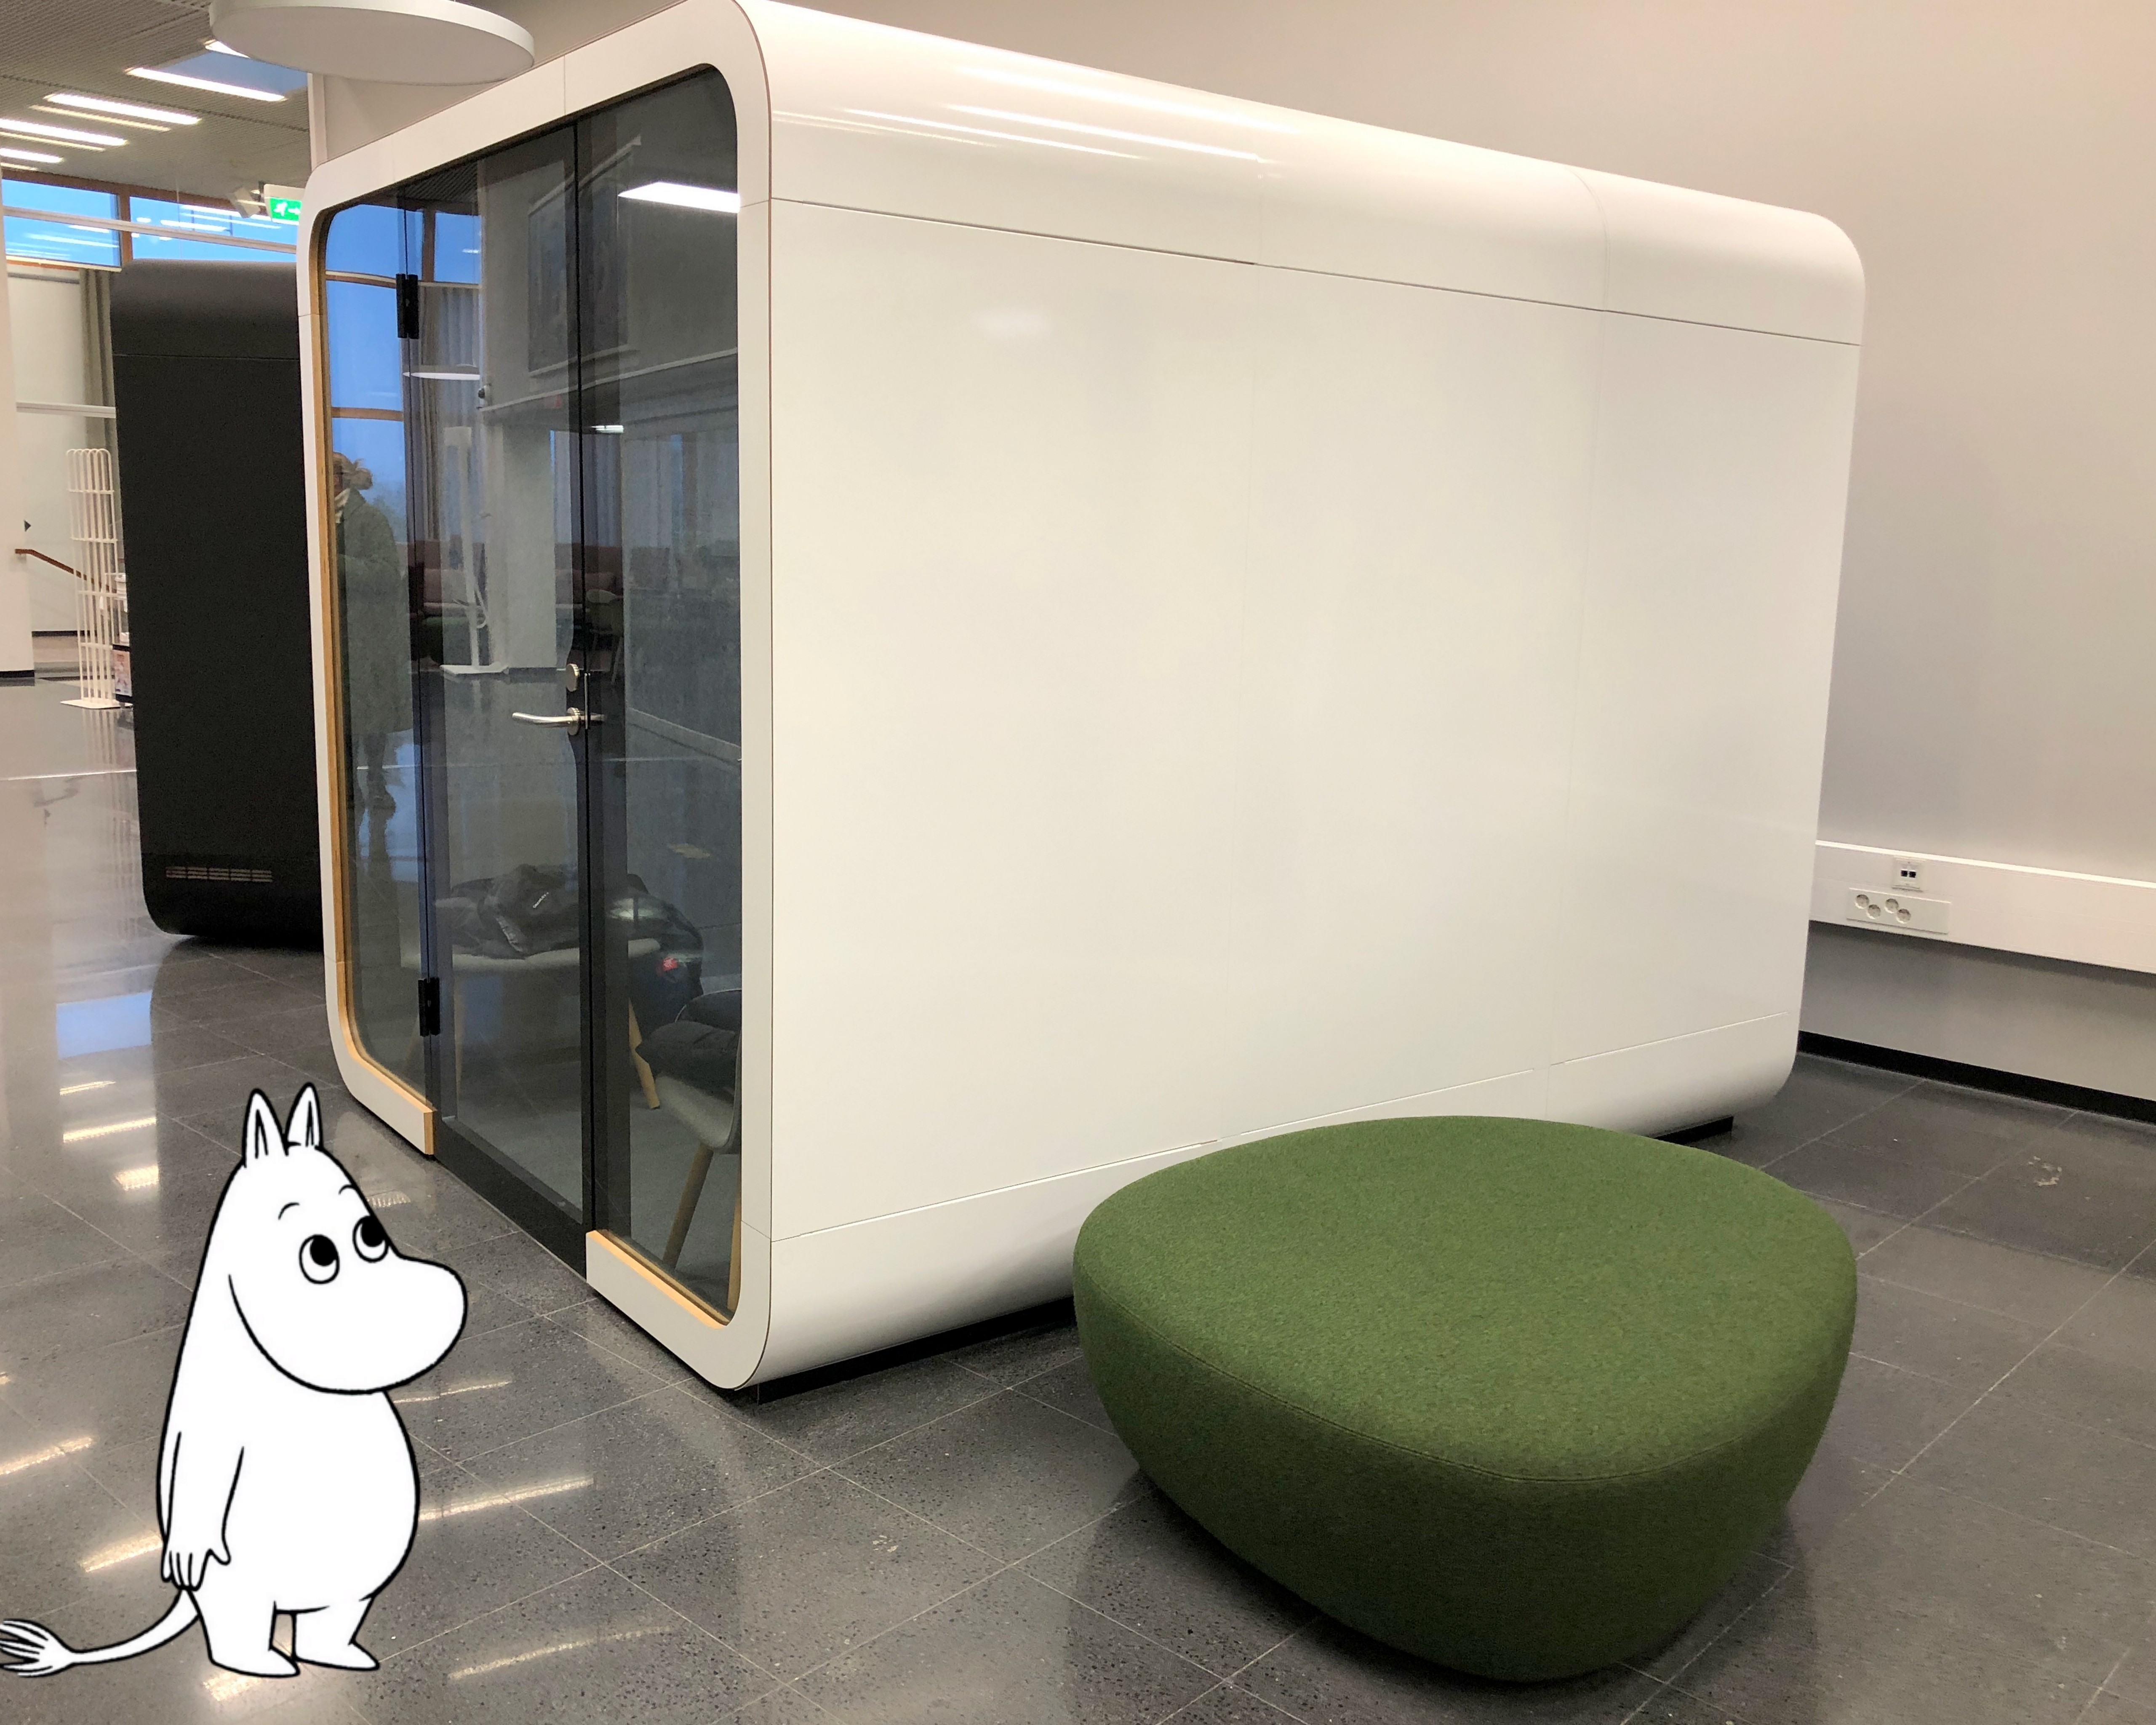 Moomintroll exploring the quiet working spaces on campus.